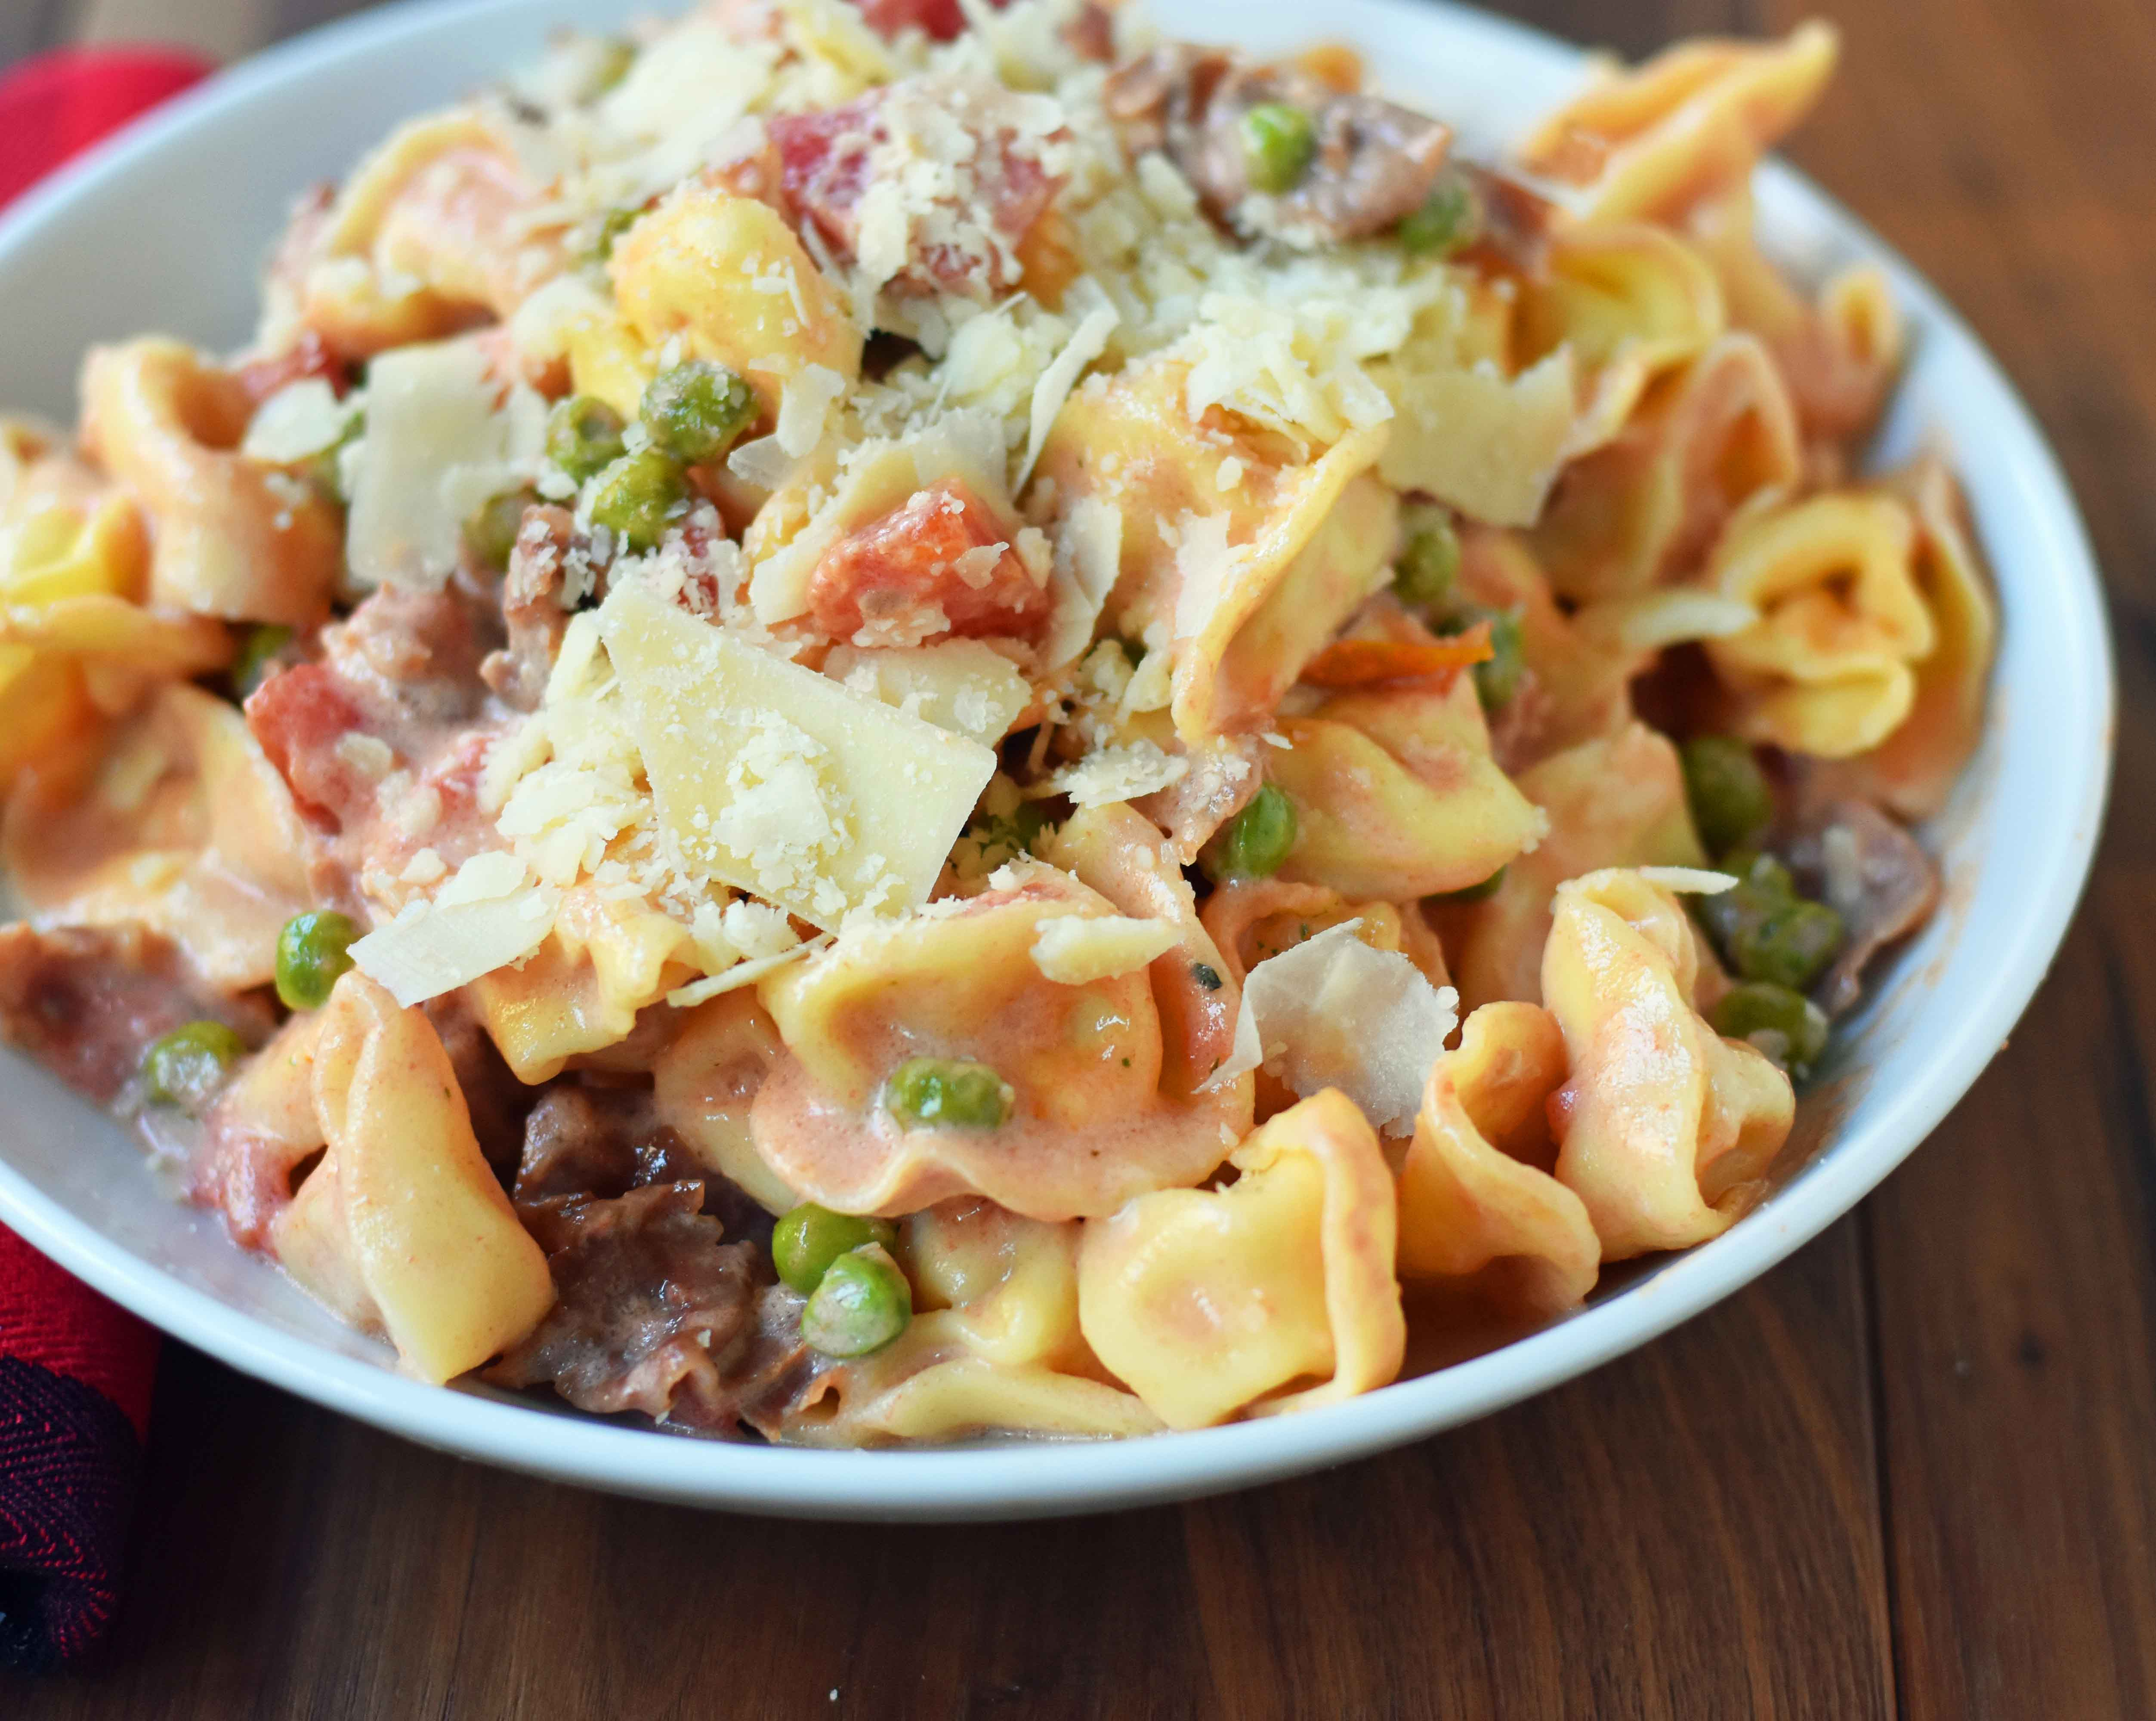 christmas tortellini pasta made with prosciutto tomato cream sauce and peas a decadent